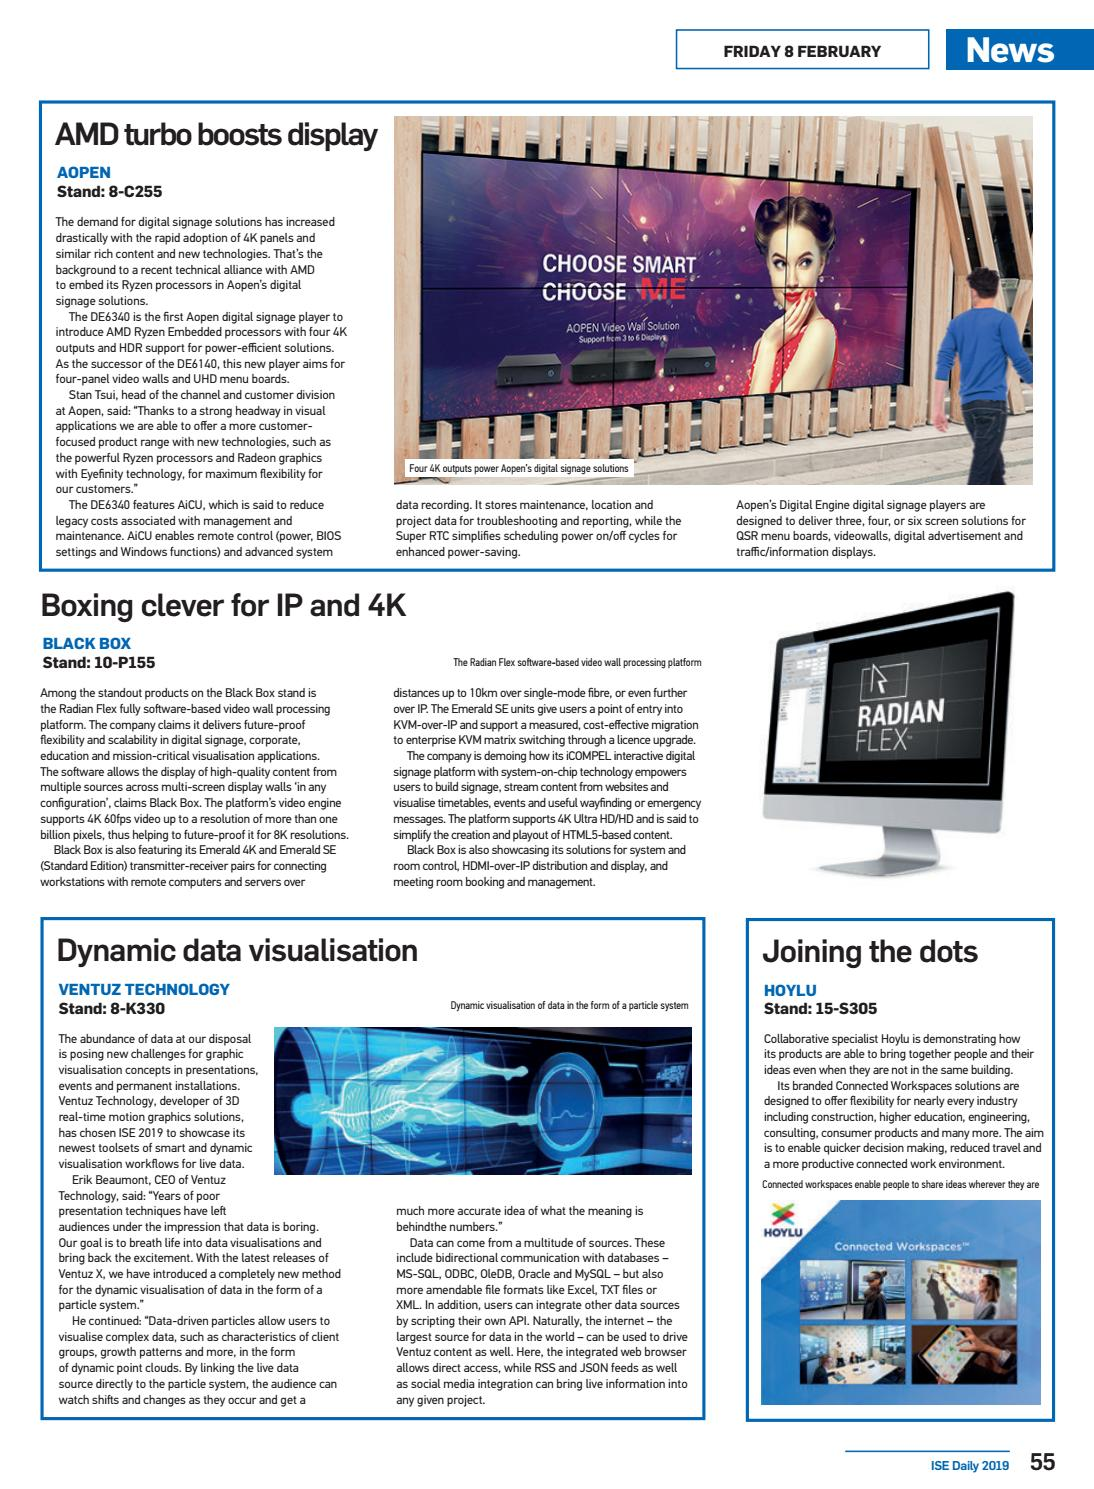 ISE Daily Friday 08 February 2019 by Future PLC - issuu